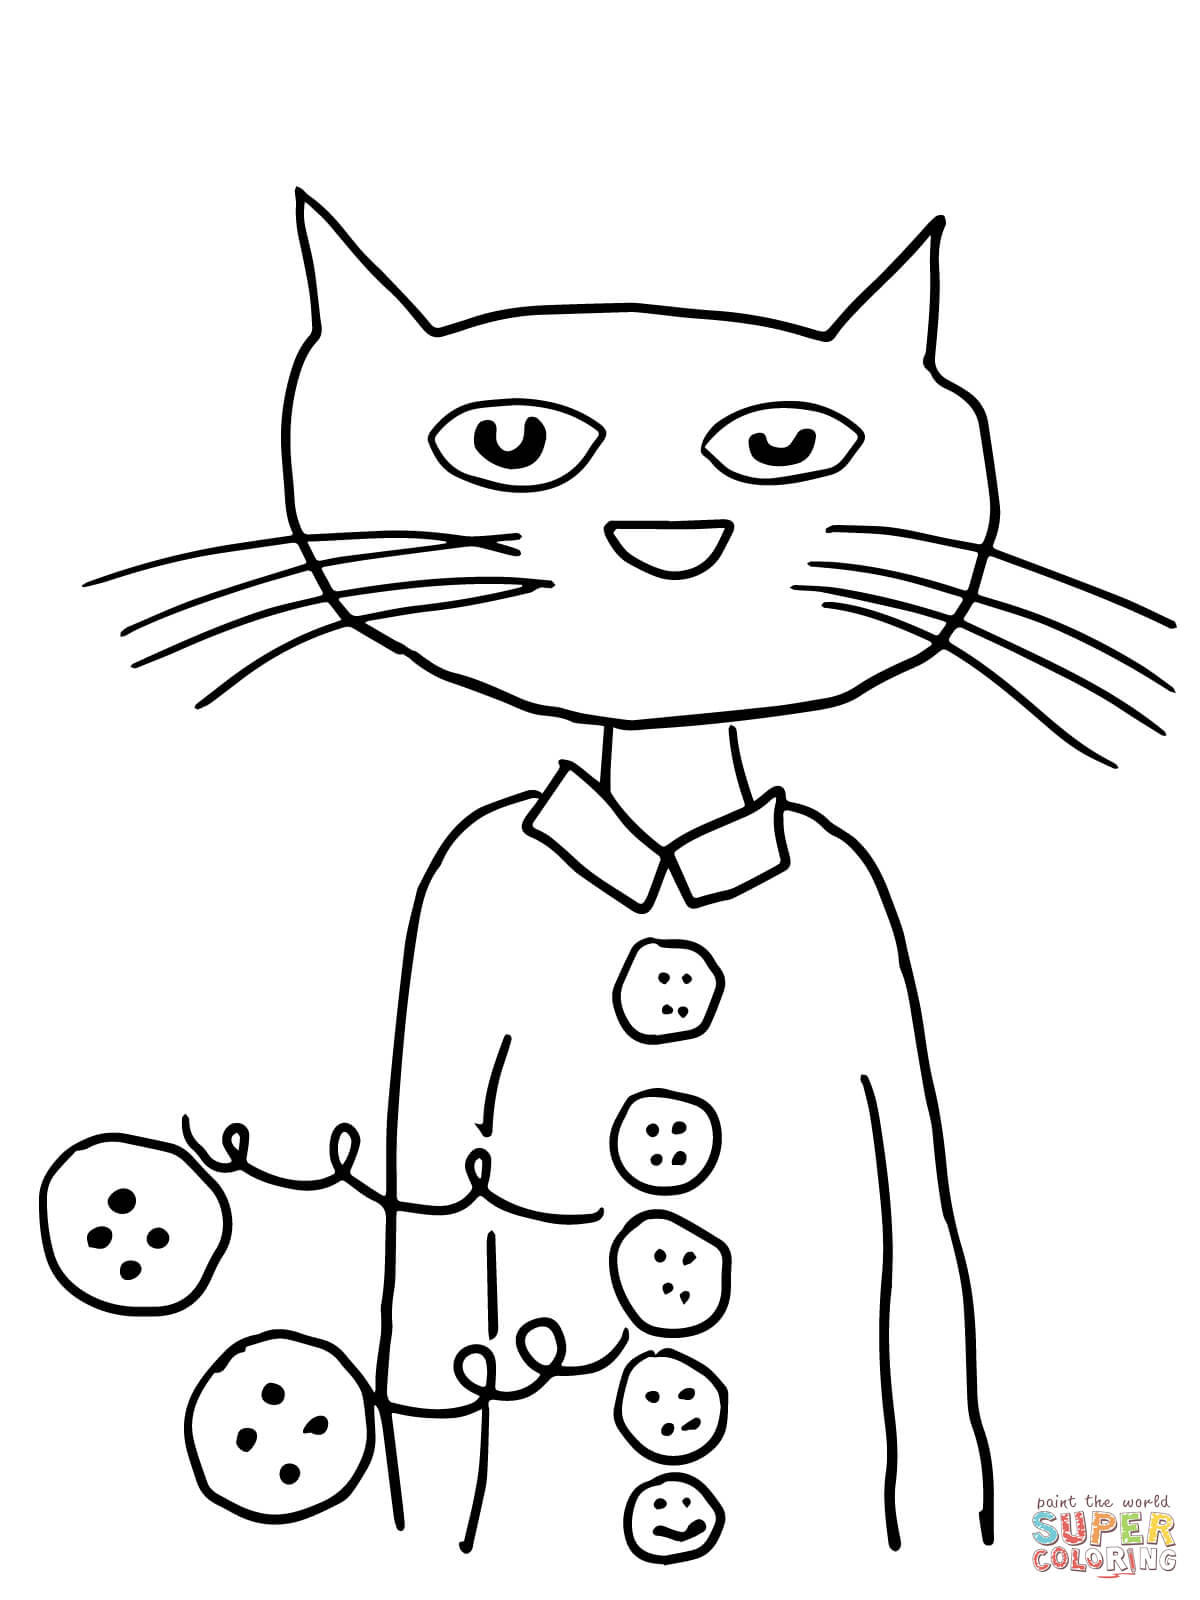 photograph relating to Pete the Cat Printable named Pete The Cat Groovy Buttons Coloring Site No cost Printable